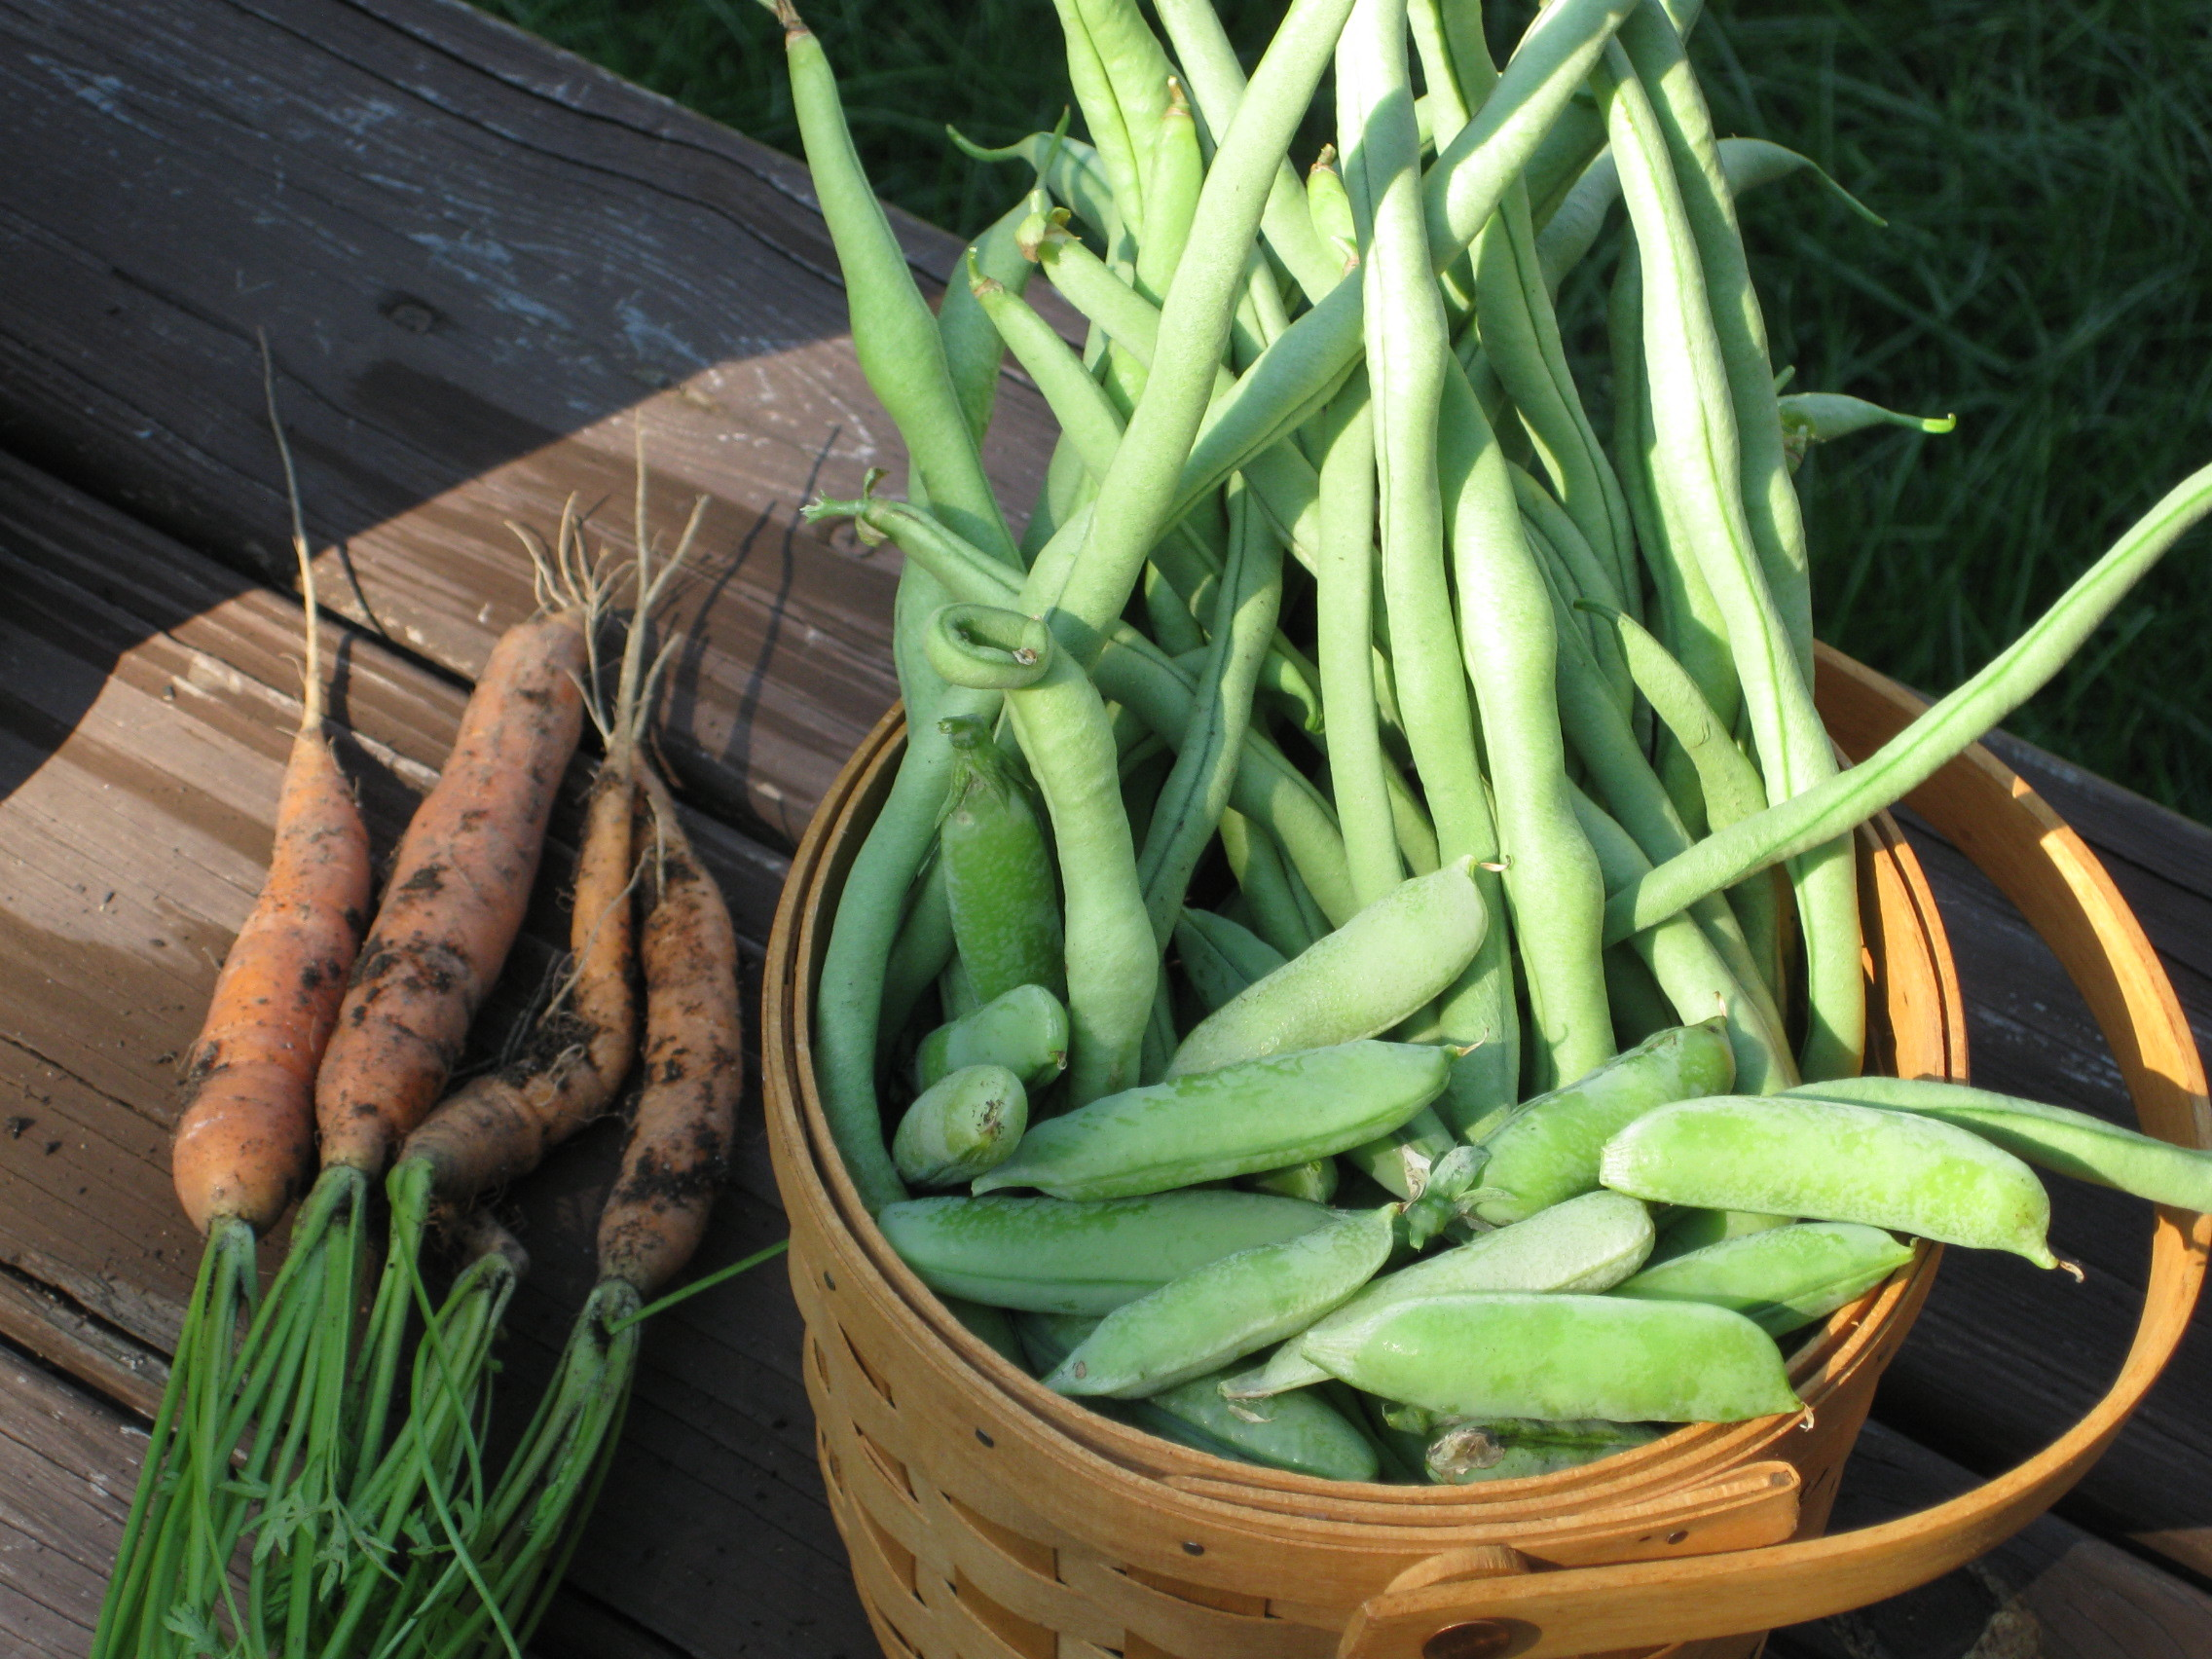 Beans, Peas and Carrots 8-25-09